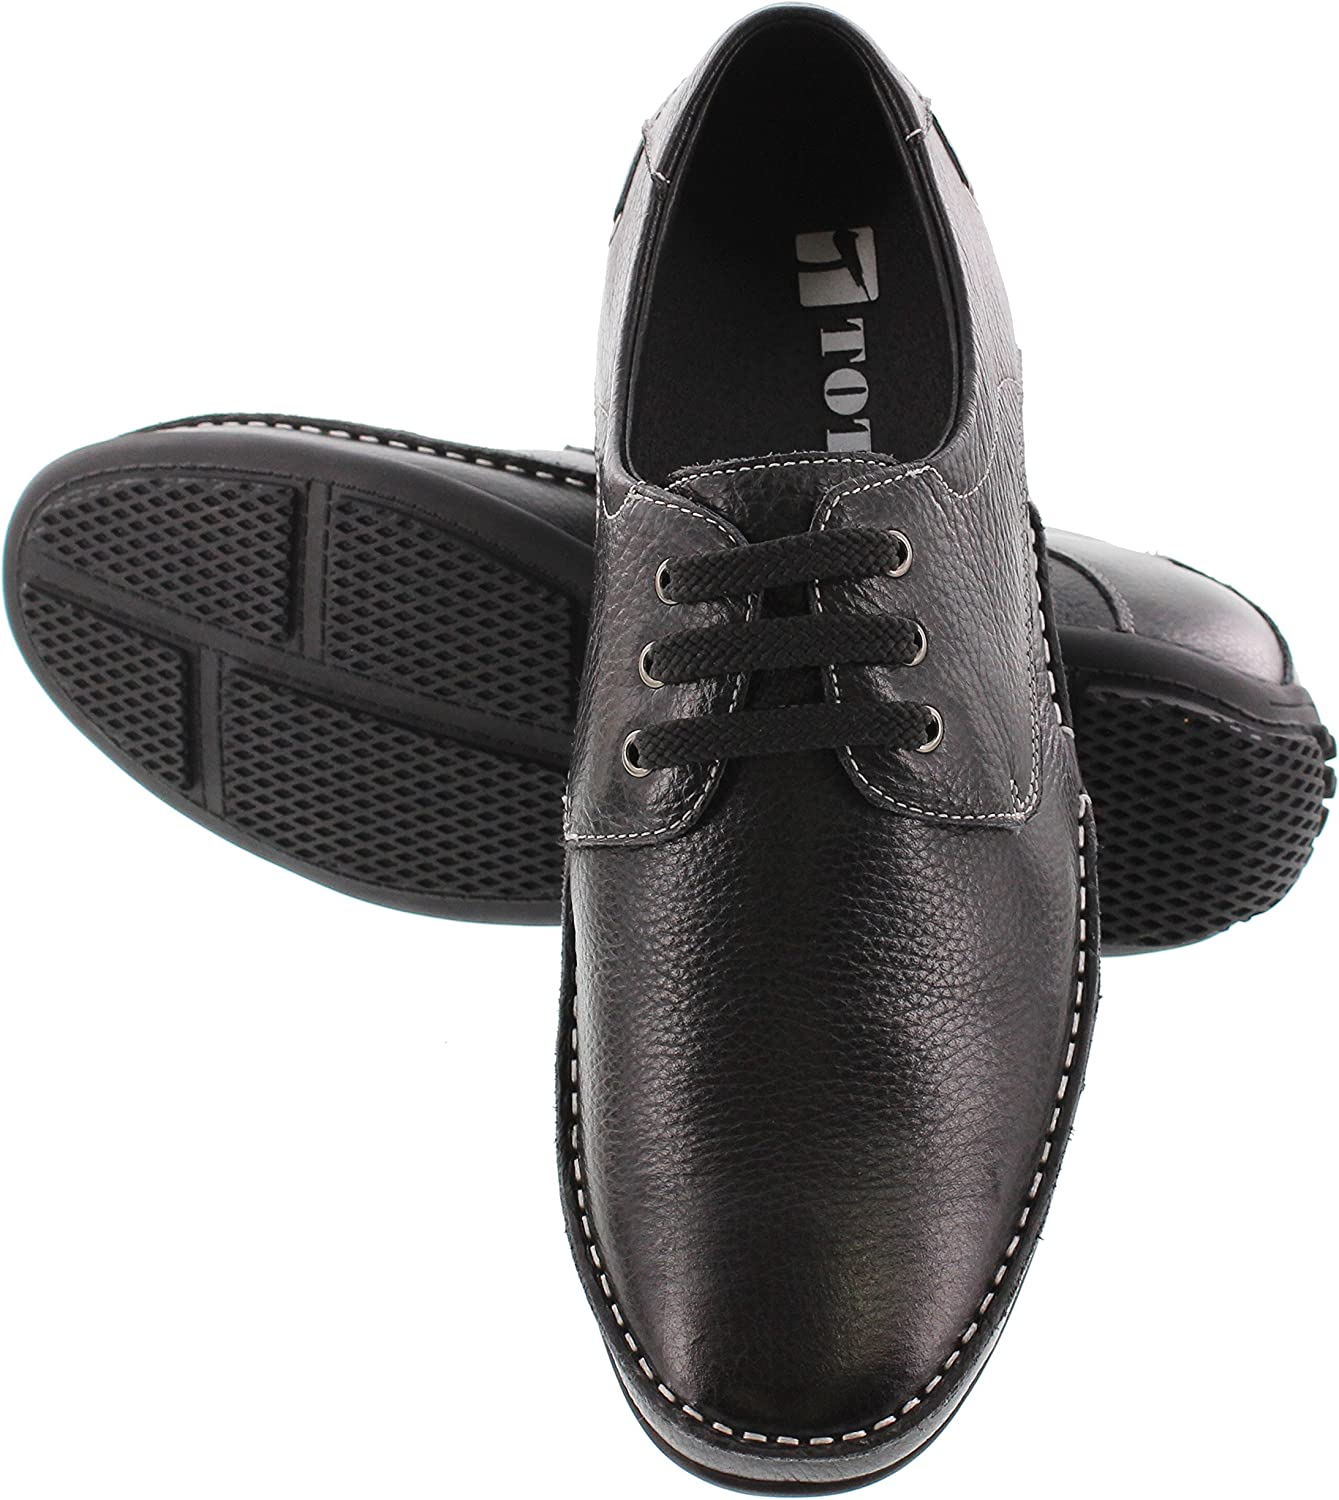 2.4 Inches Taller Black Premium Leather Lace-up Lightweight Casual Shoes TOTO Mens Invisible Height Increasing Elevator Shoes H19082